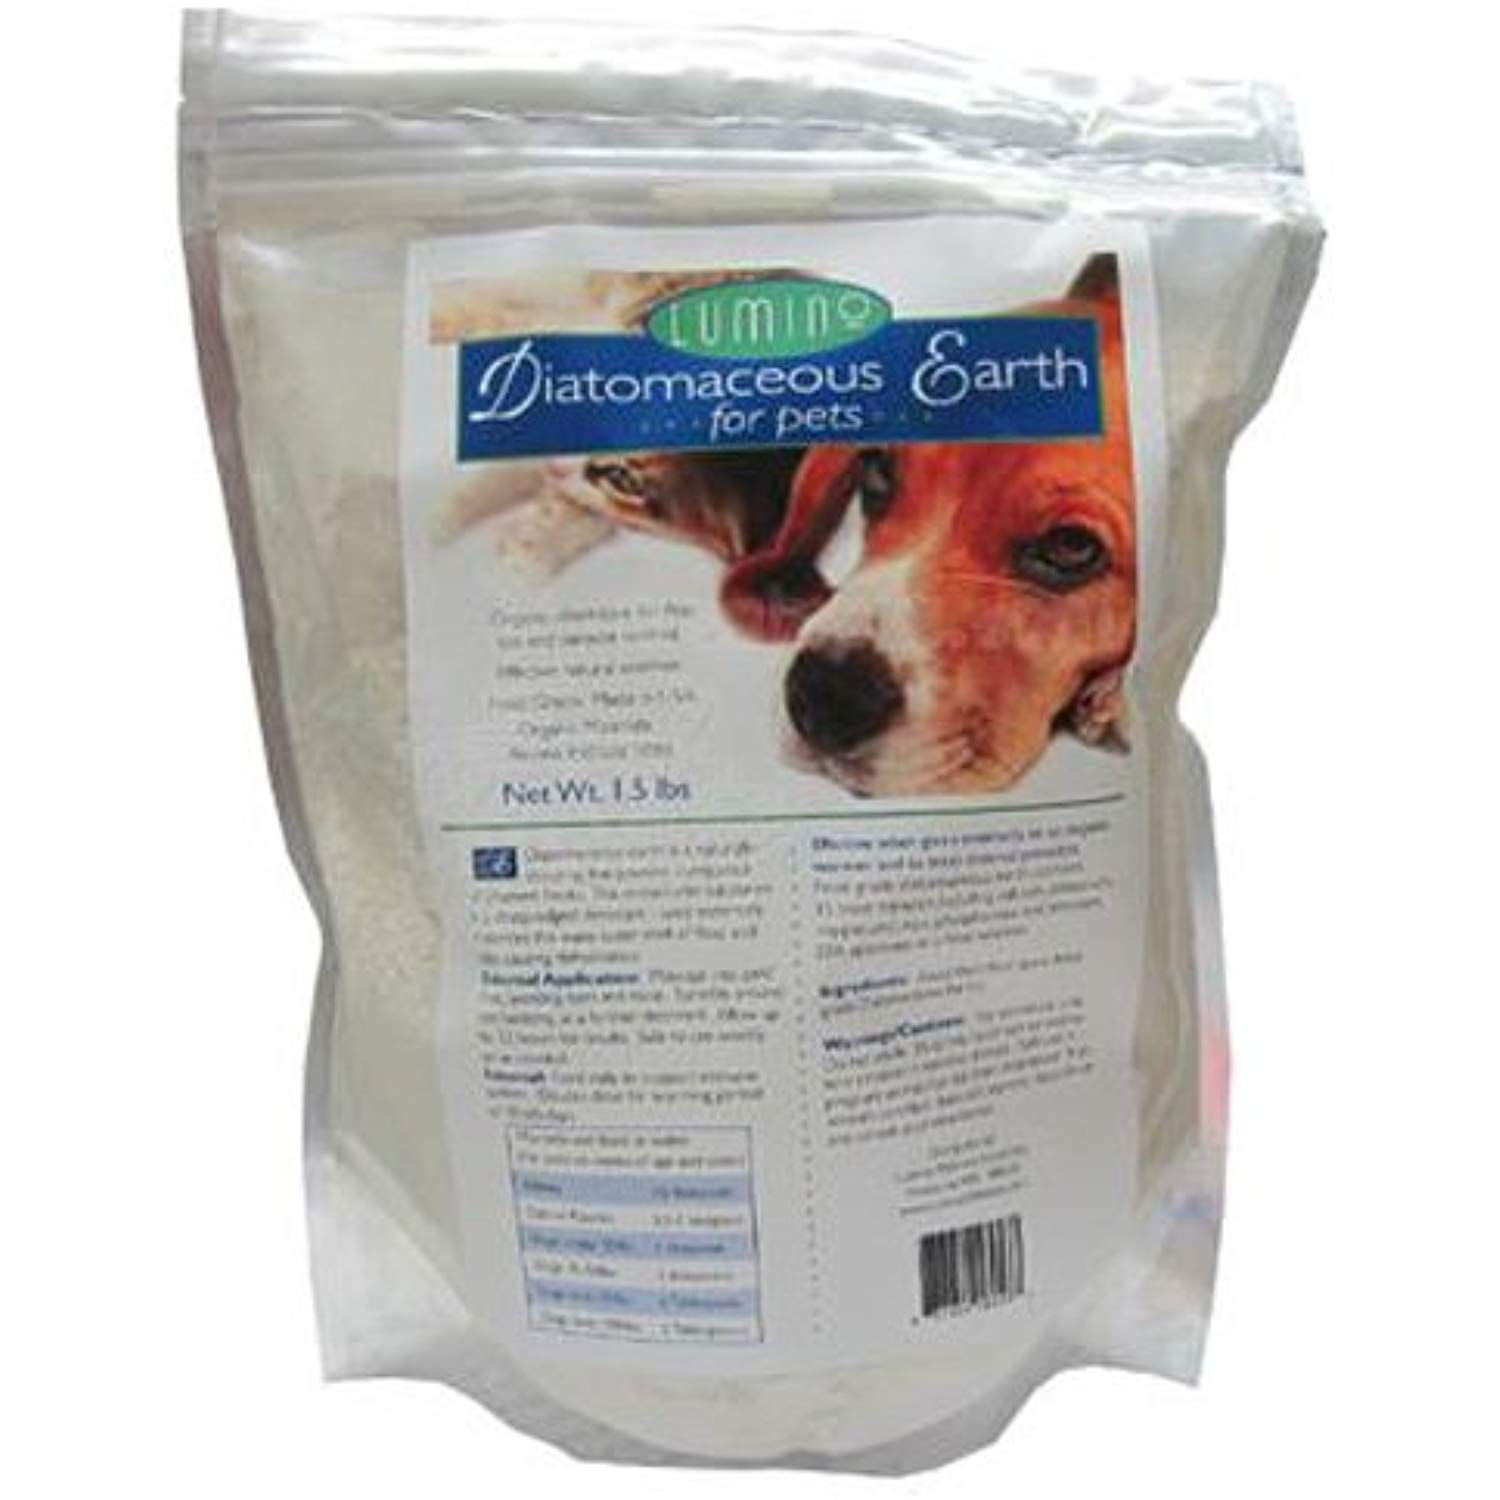 Lumino Organic Diatomaceous Earth For Pets 1.5 lb * Be